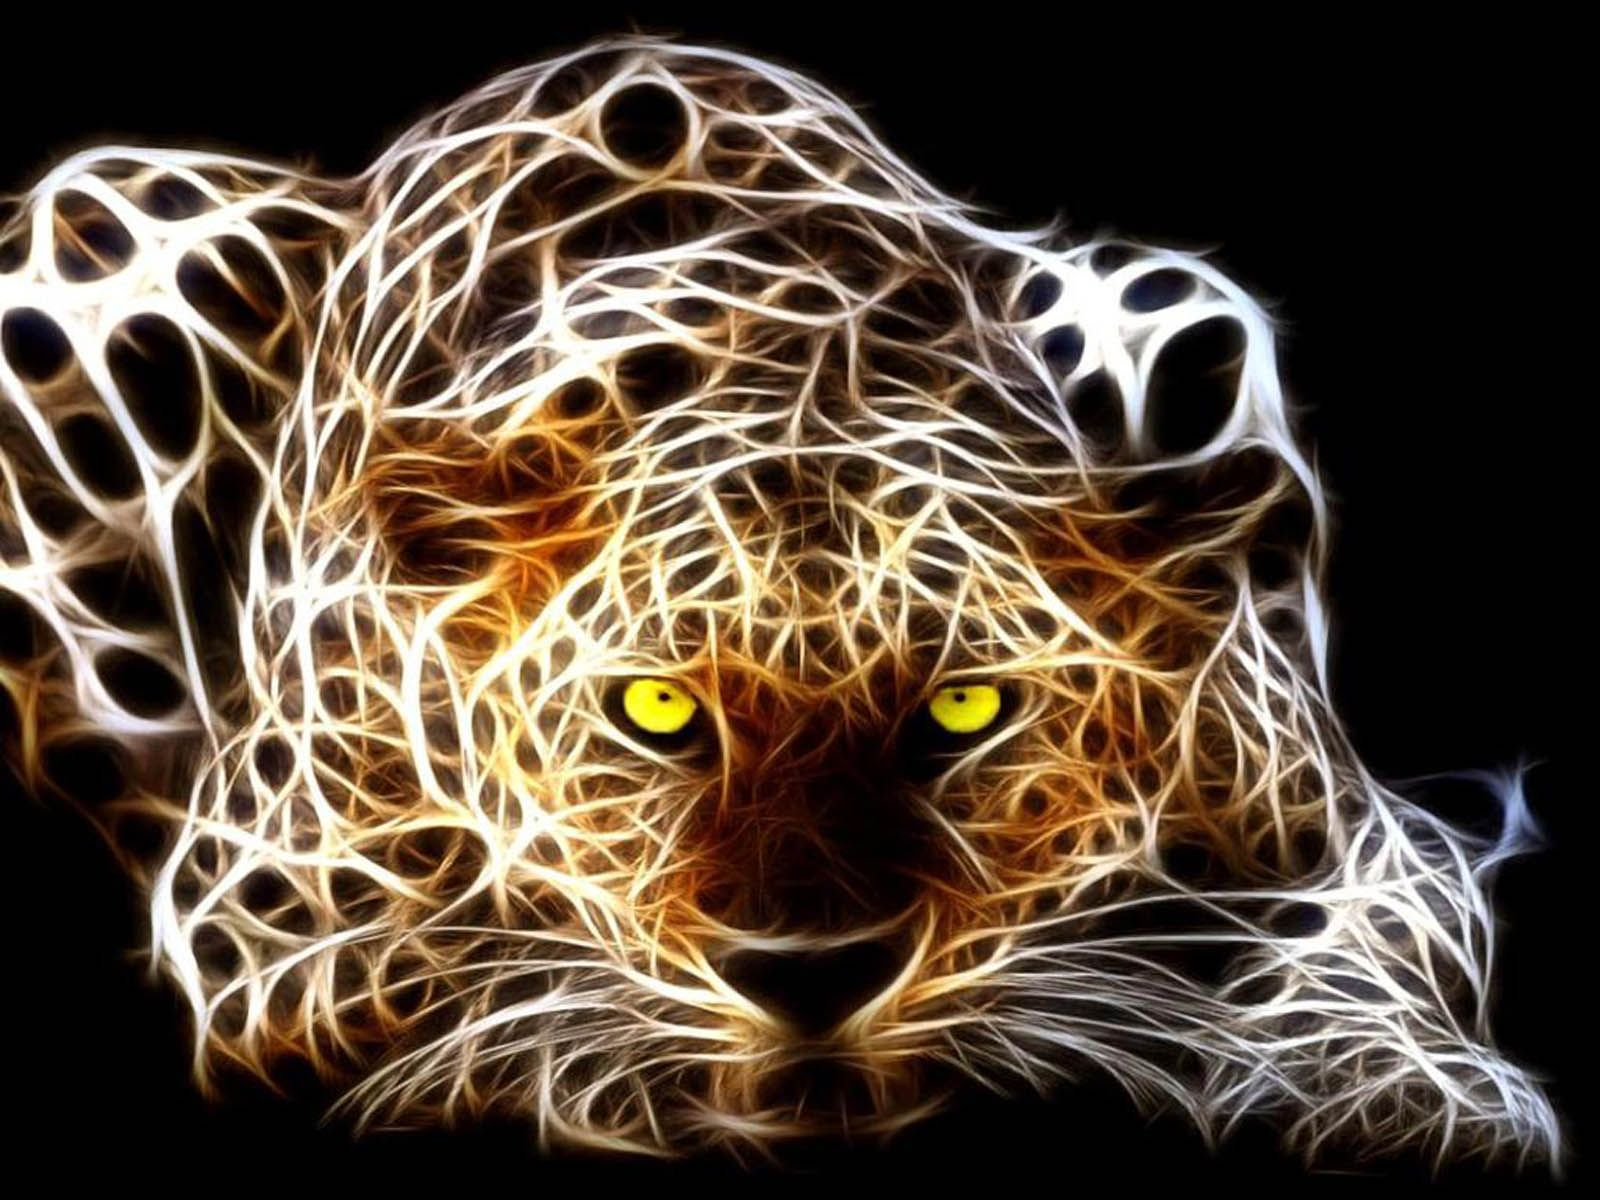 Cool 3D Backgrounds of Tigers | Tag: Tiger 3D Wallpapers, Images ...